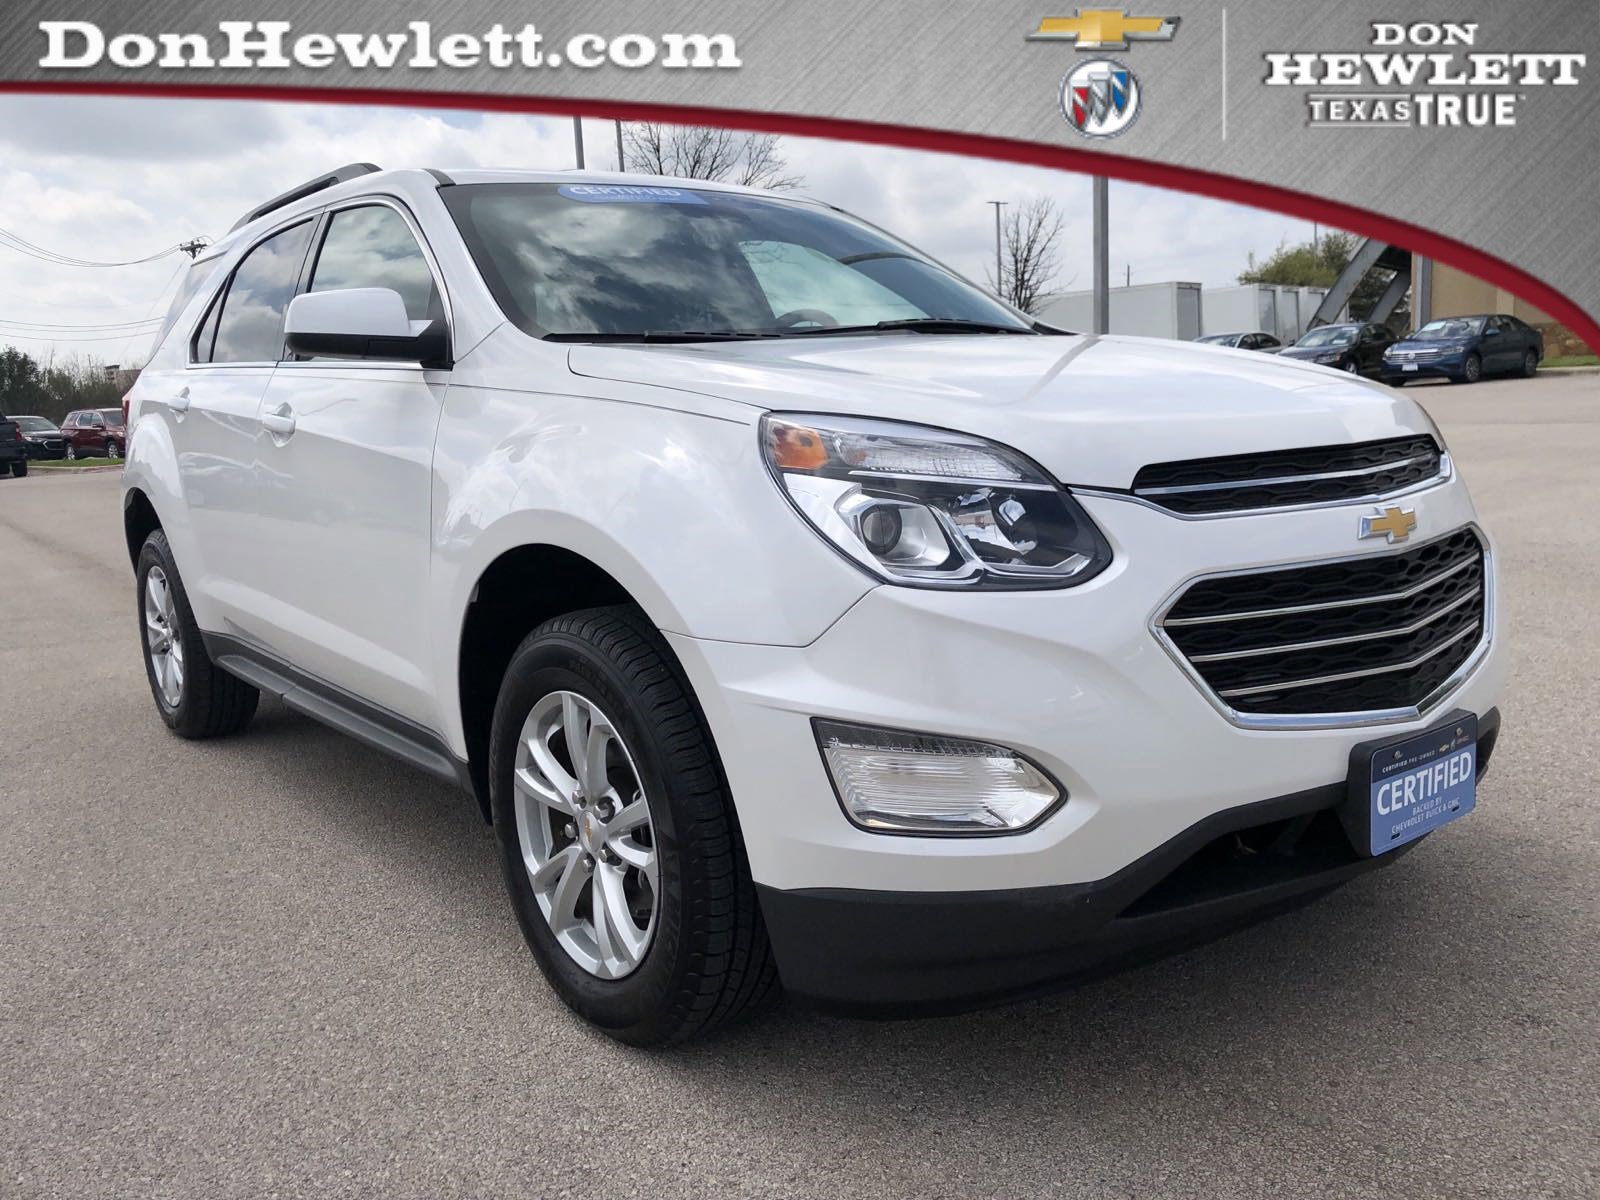 2017 Chevrolet Equinox FWD LT w/ Convenience Package image